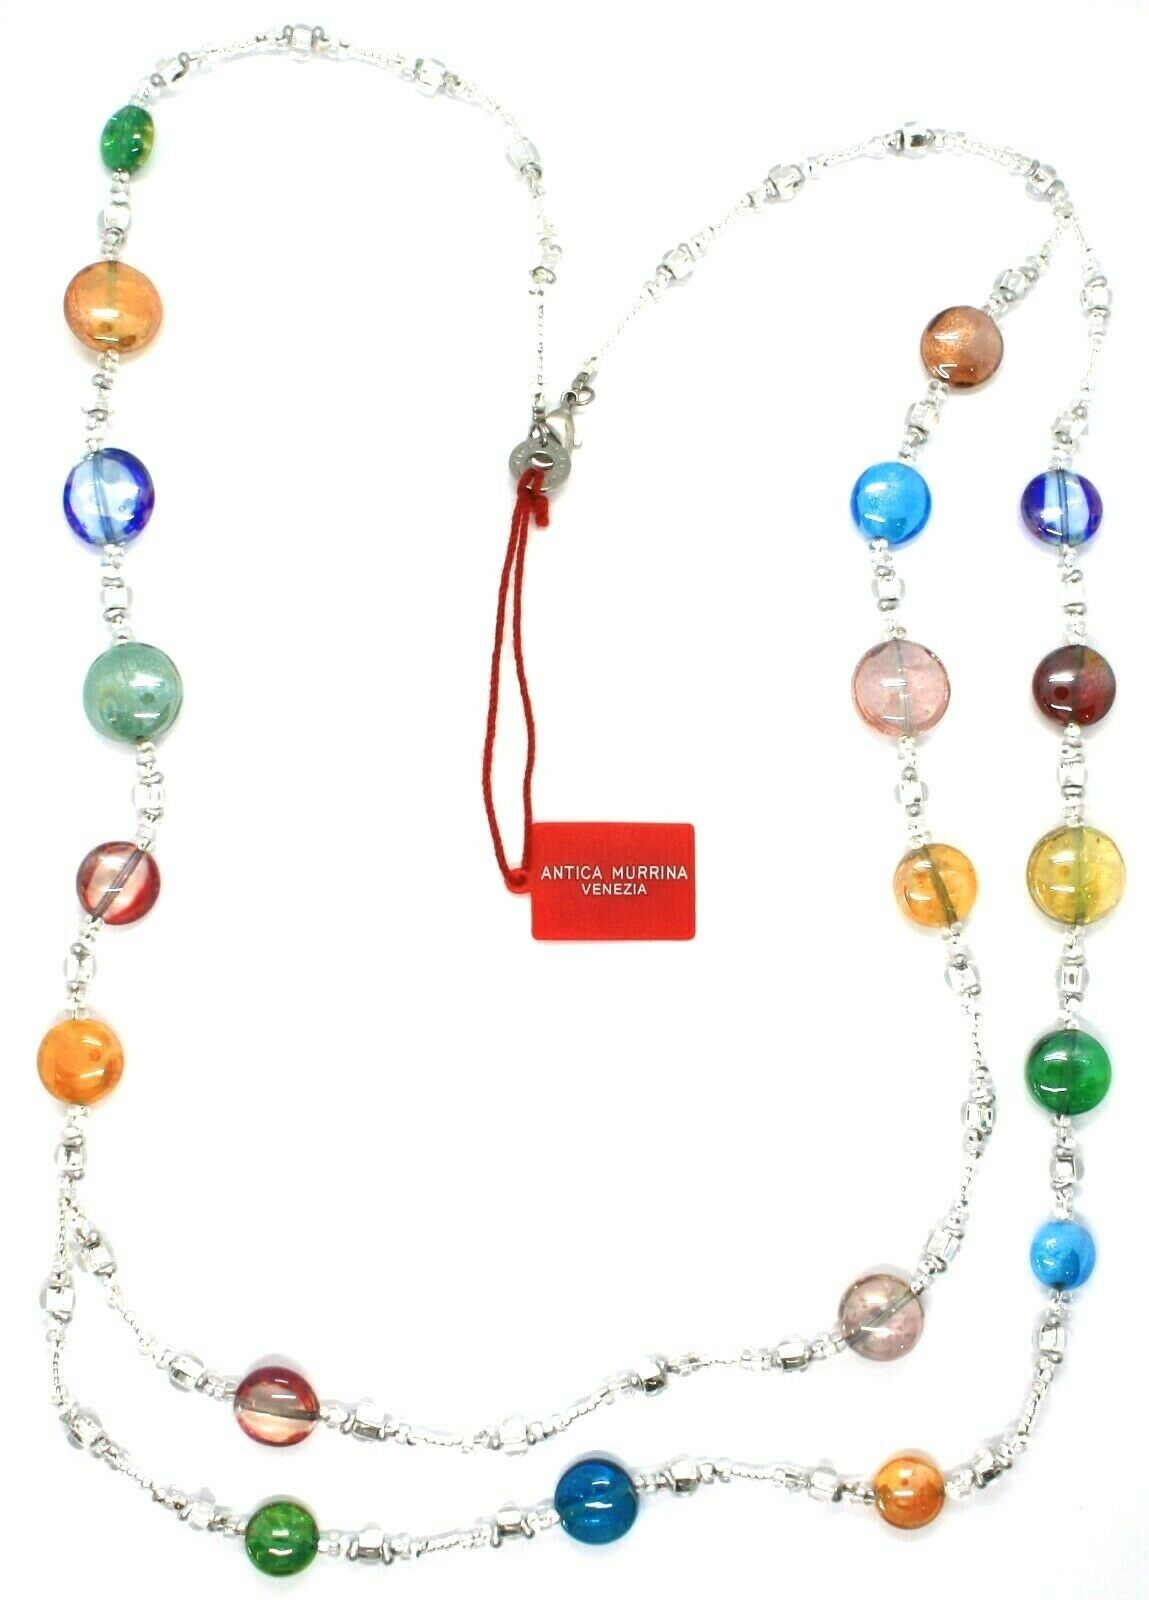 Necklace Antica Murrina Venezia CO905A38, Discs, Two Wires, Multicolour, 80 CM